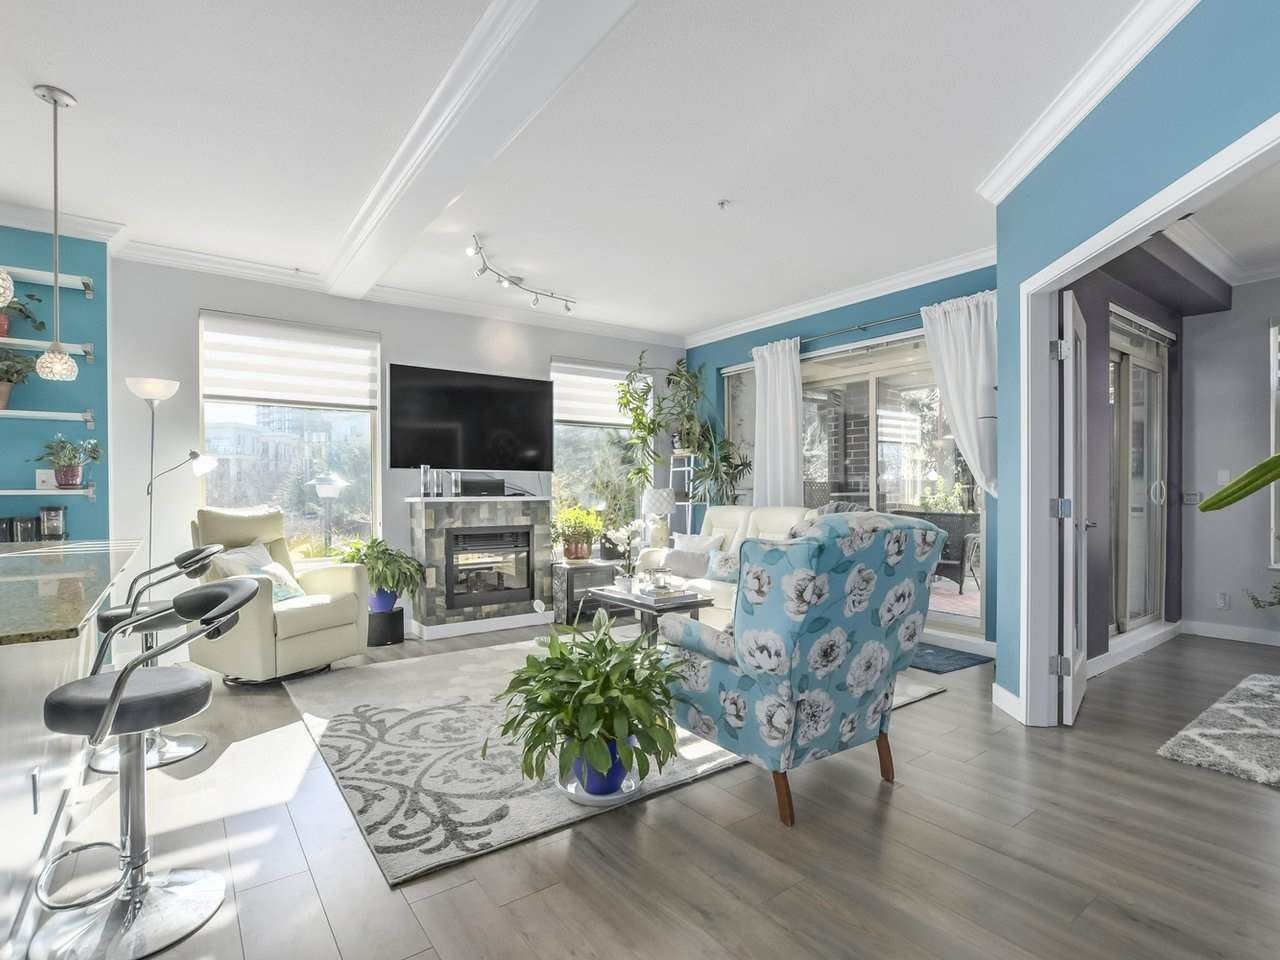 """Main Photo: 105 270 FRANCIS Way in New Westminster: Fraserview NW Condo for sale in """"The Grove"""" : MLS®# R2343463"""